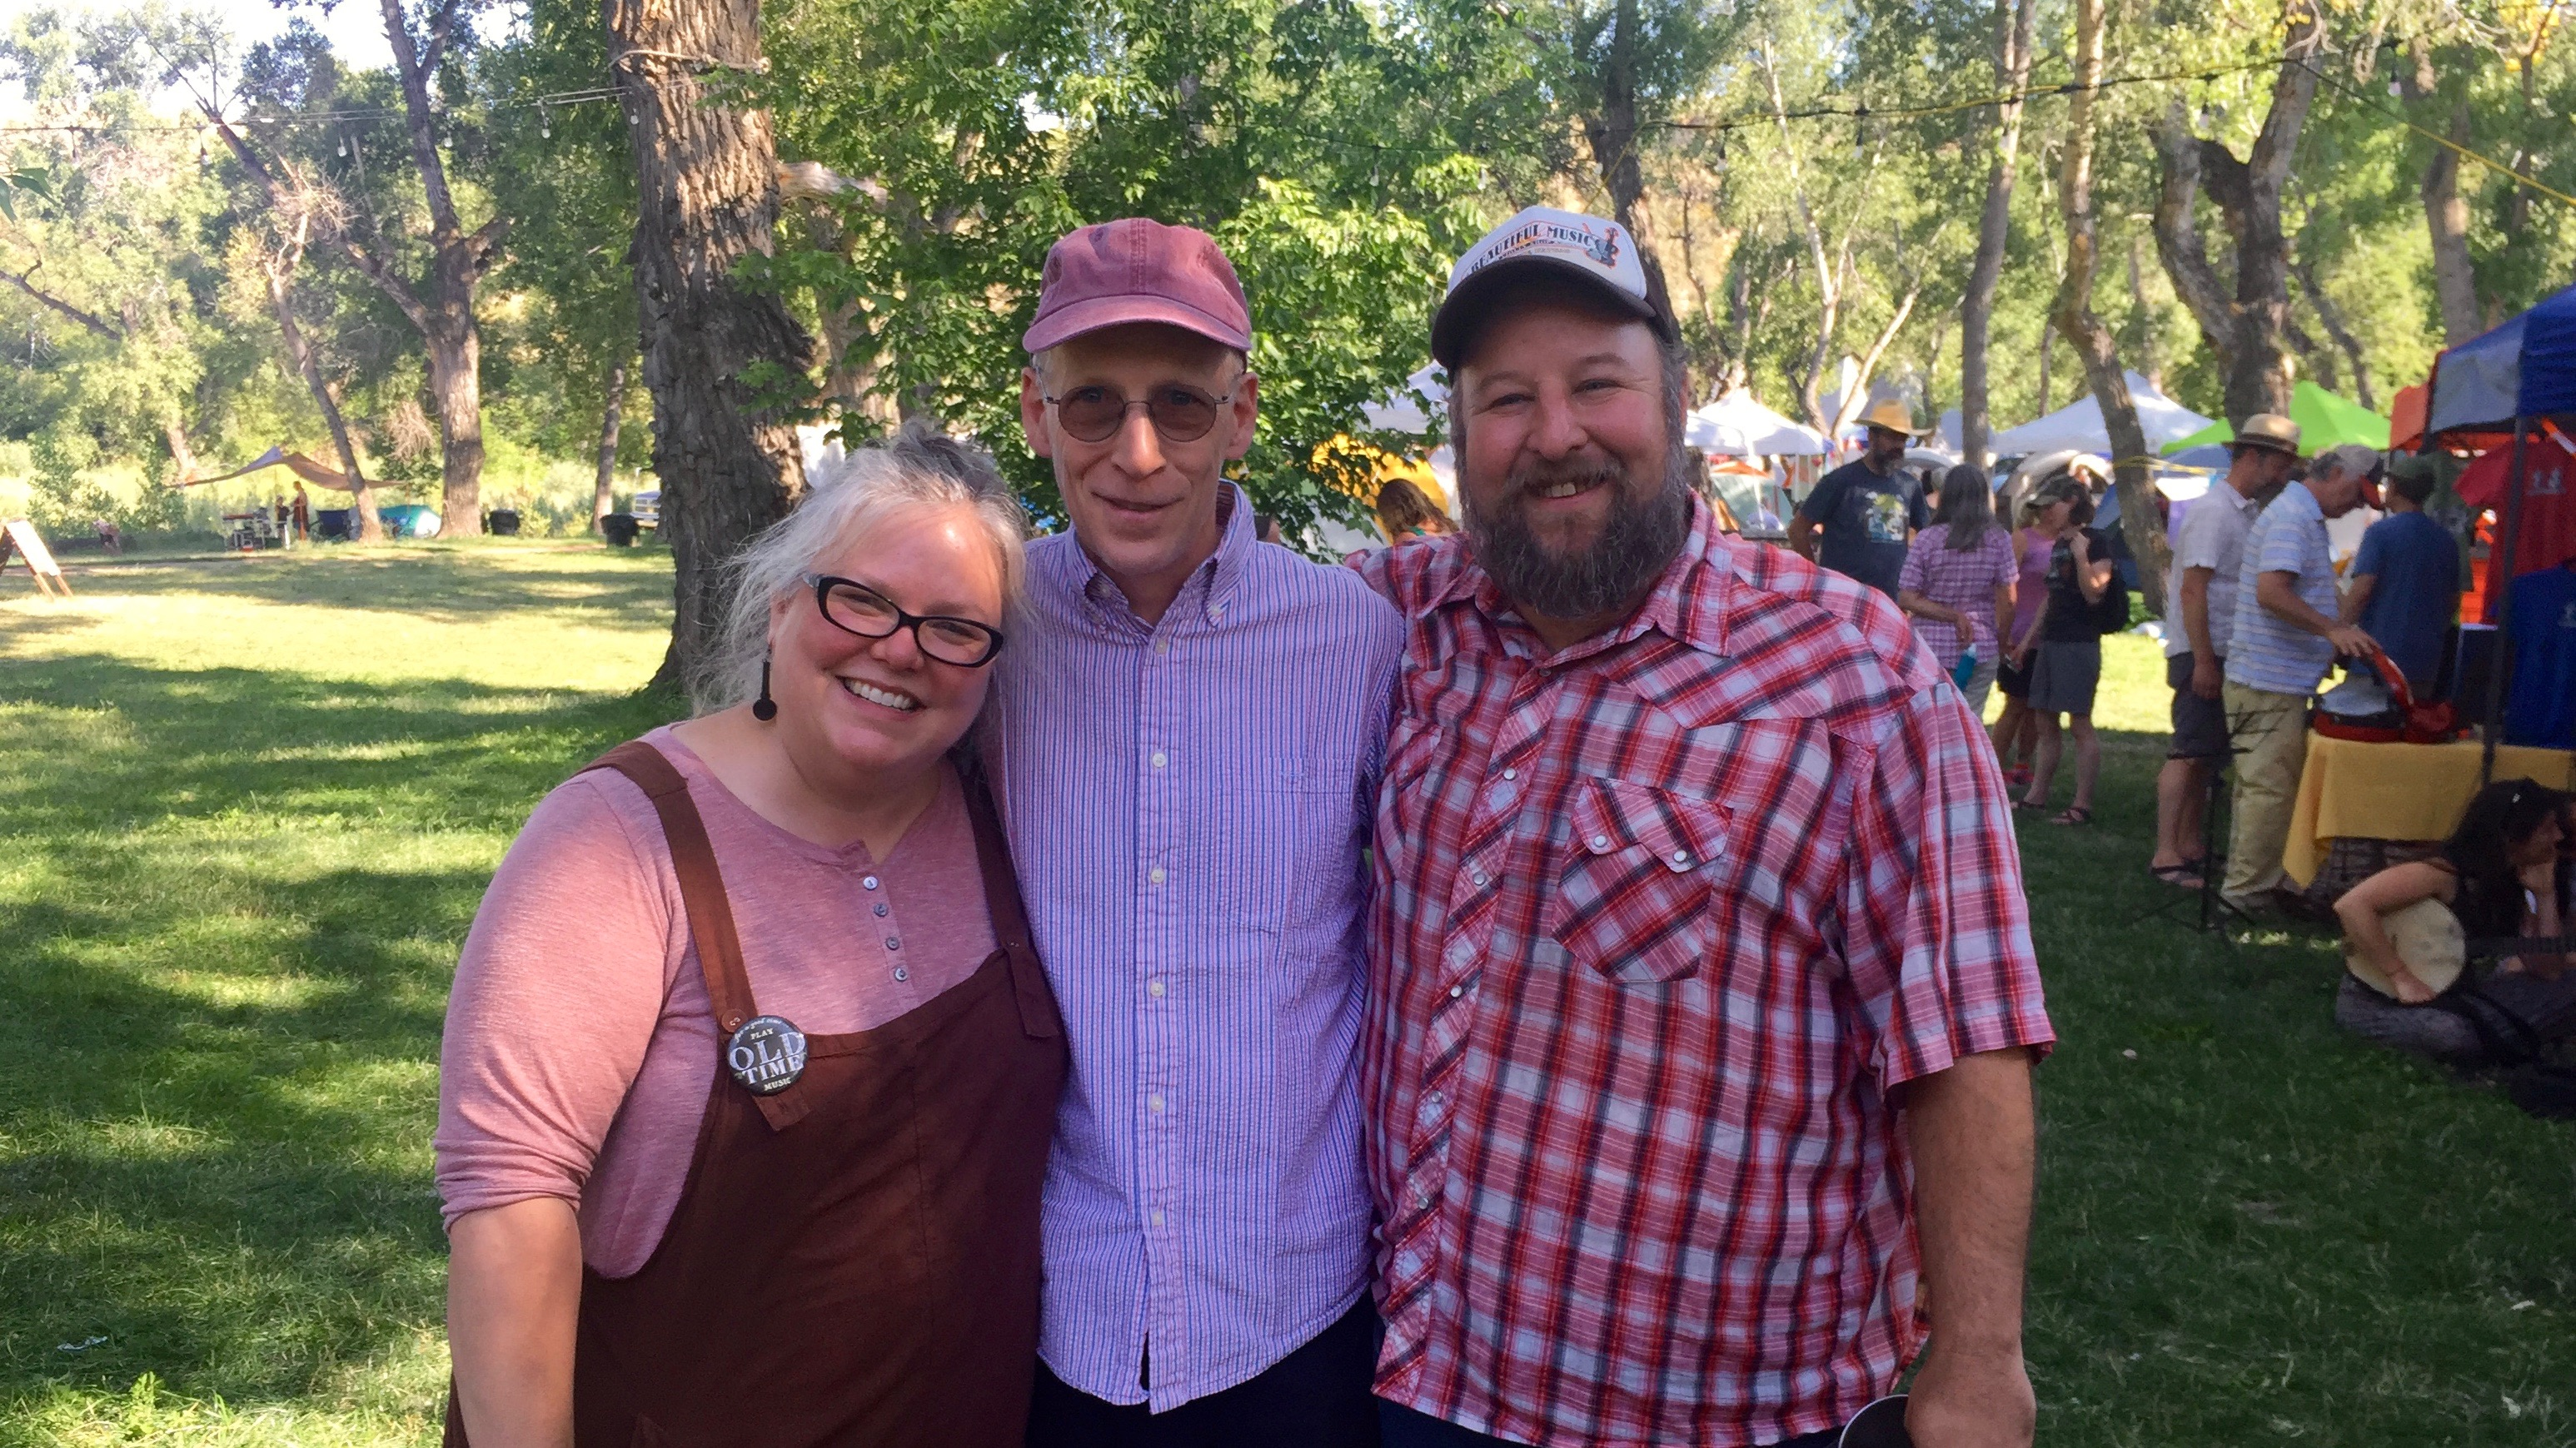 Caption: Across the Blue Ridge host Paul Brown (center) with Betse Ellis (l.) and Clarke Wyatt at the 2018 Rocky Mountain Old Time Music Festival in Colorado.  Betse and Clarke, a duo with an interesting musical history before they concentrated on roots and old-ti, Credit: Paul Brown